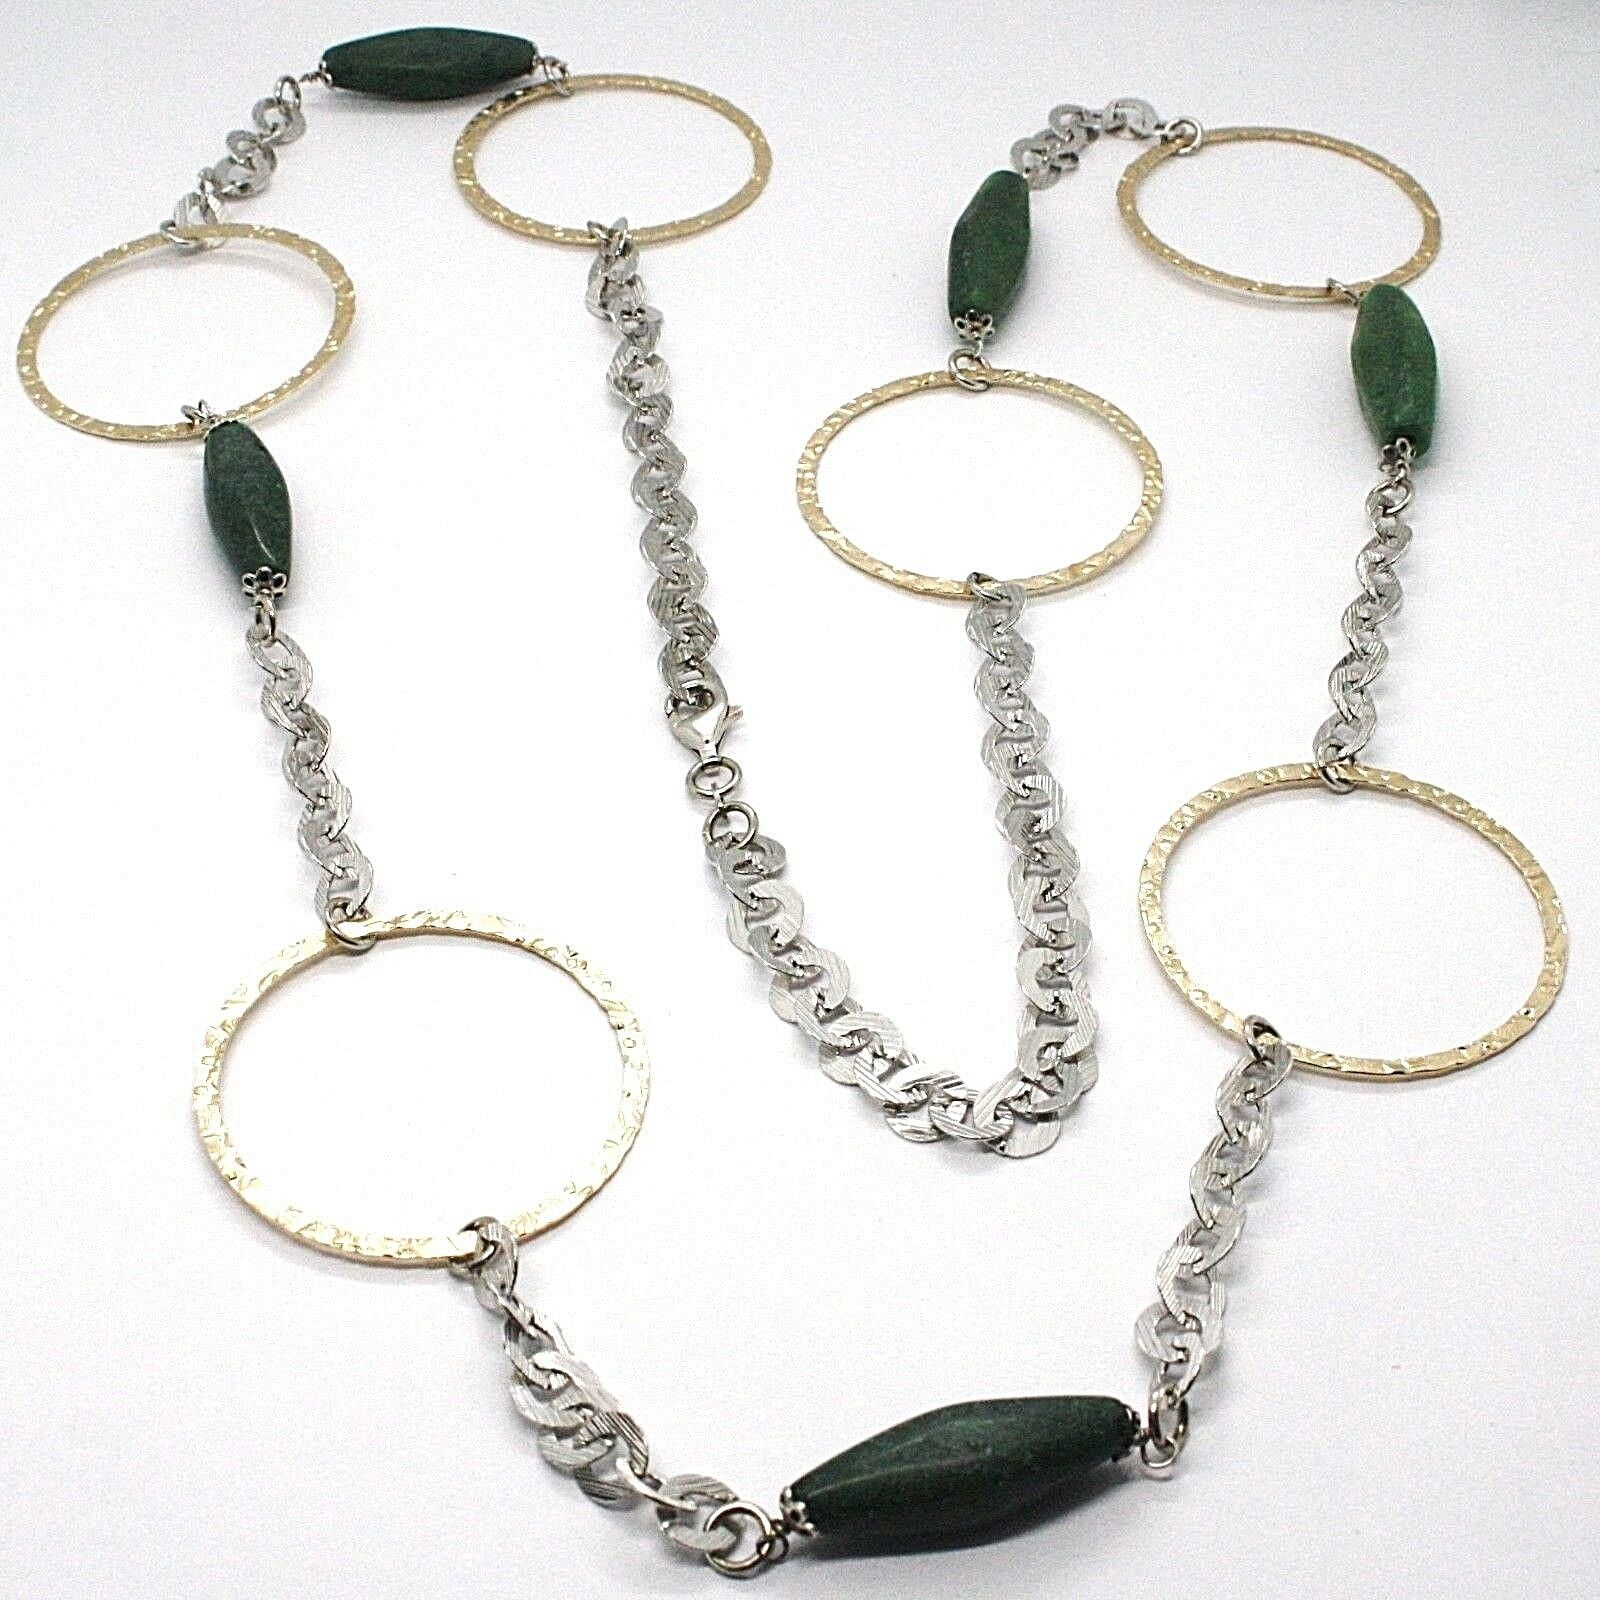 SILVER 925 NECKLACE, GIADA GREEN, CIRCLES YELLOW, 100 CM, ROLO' TEXTURED